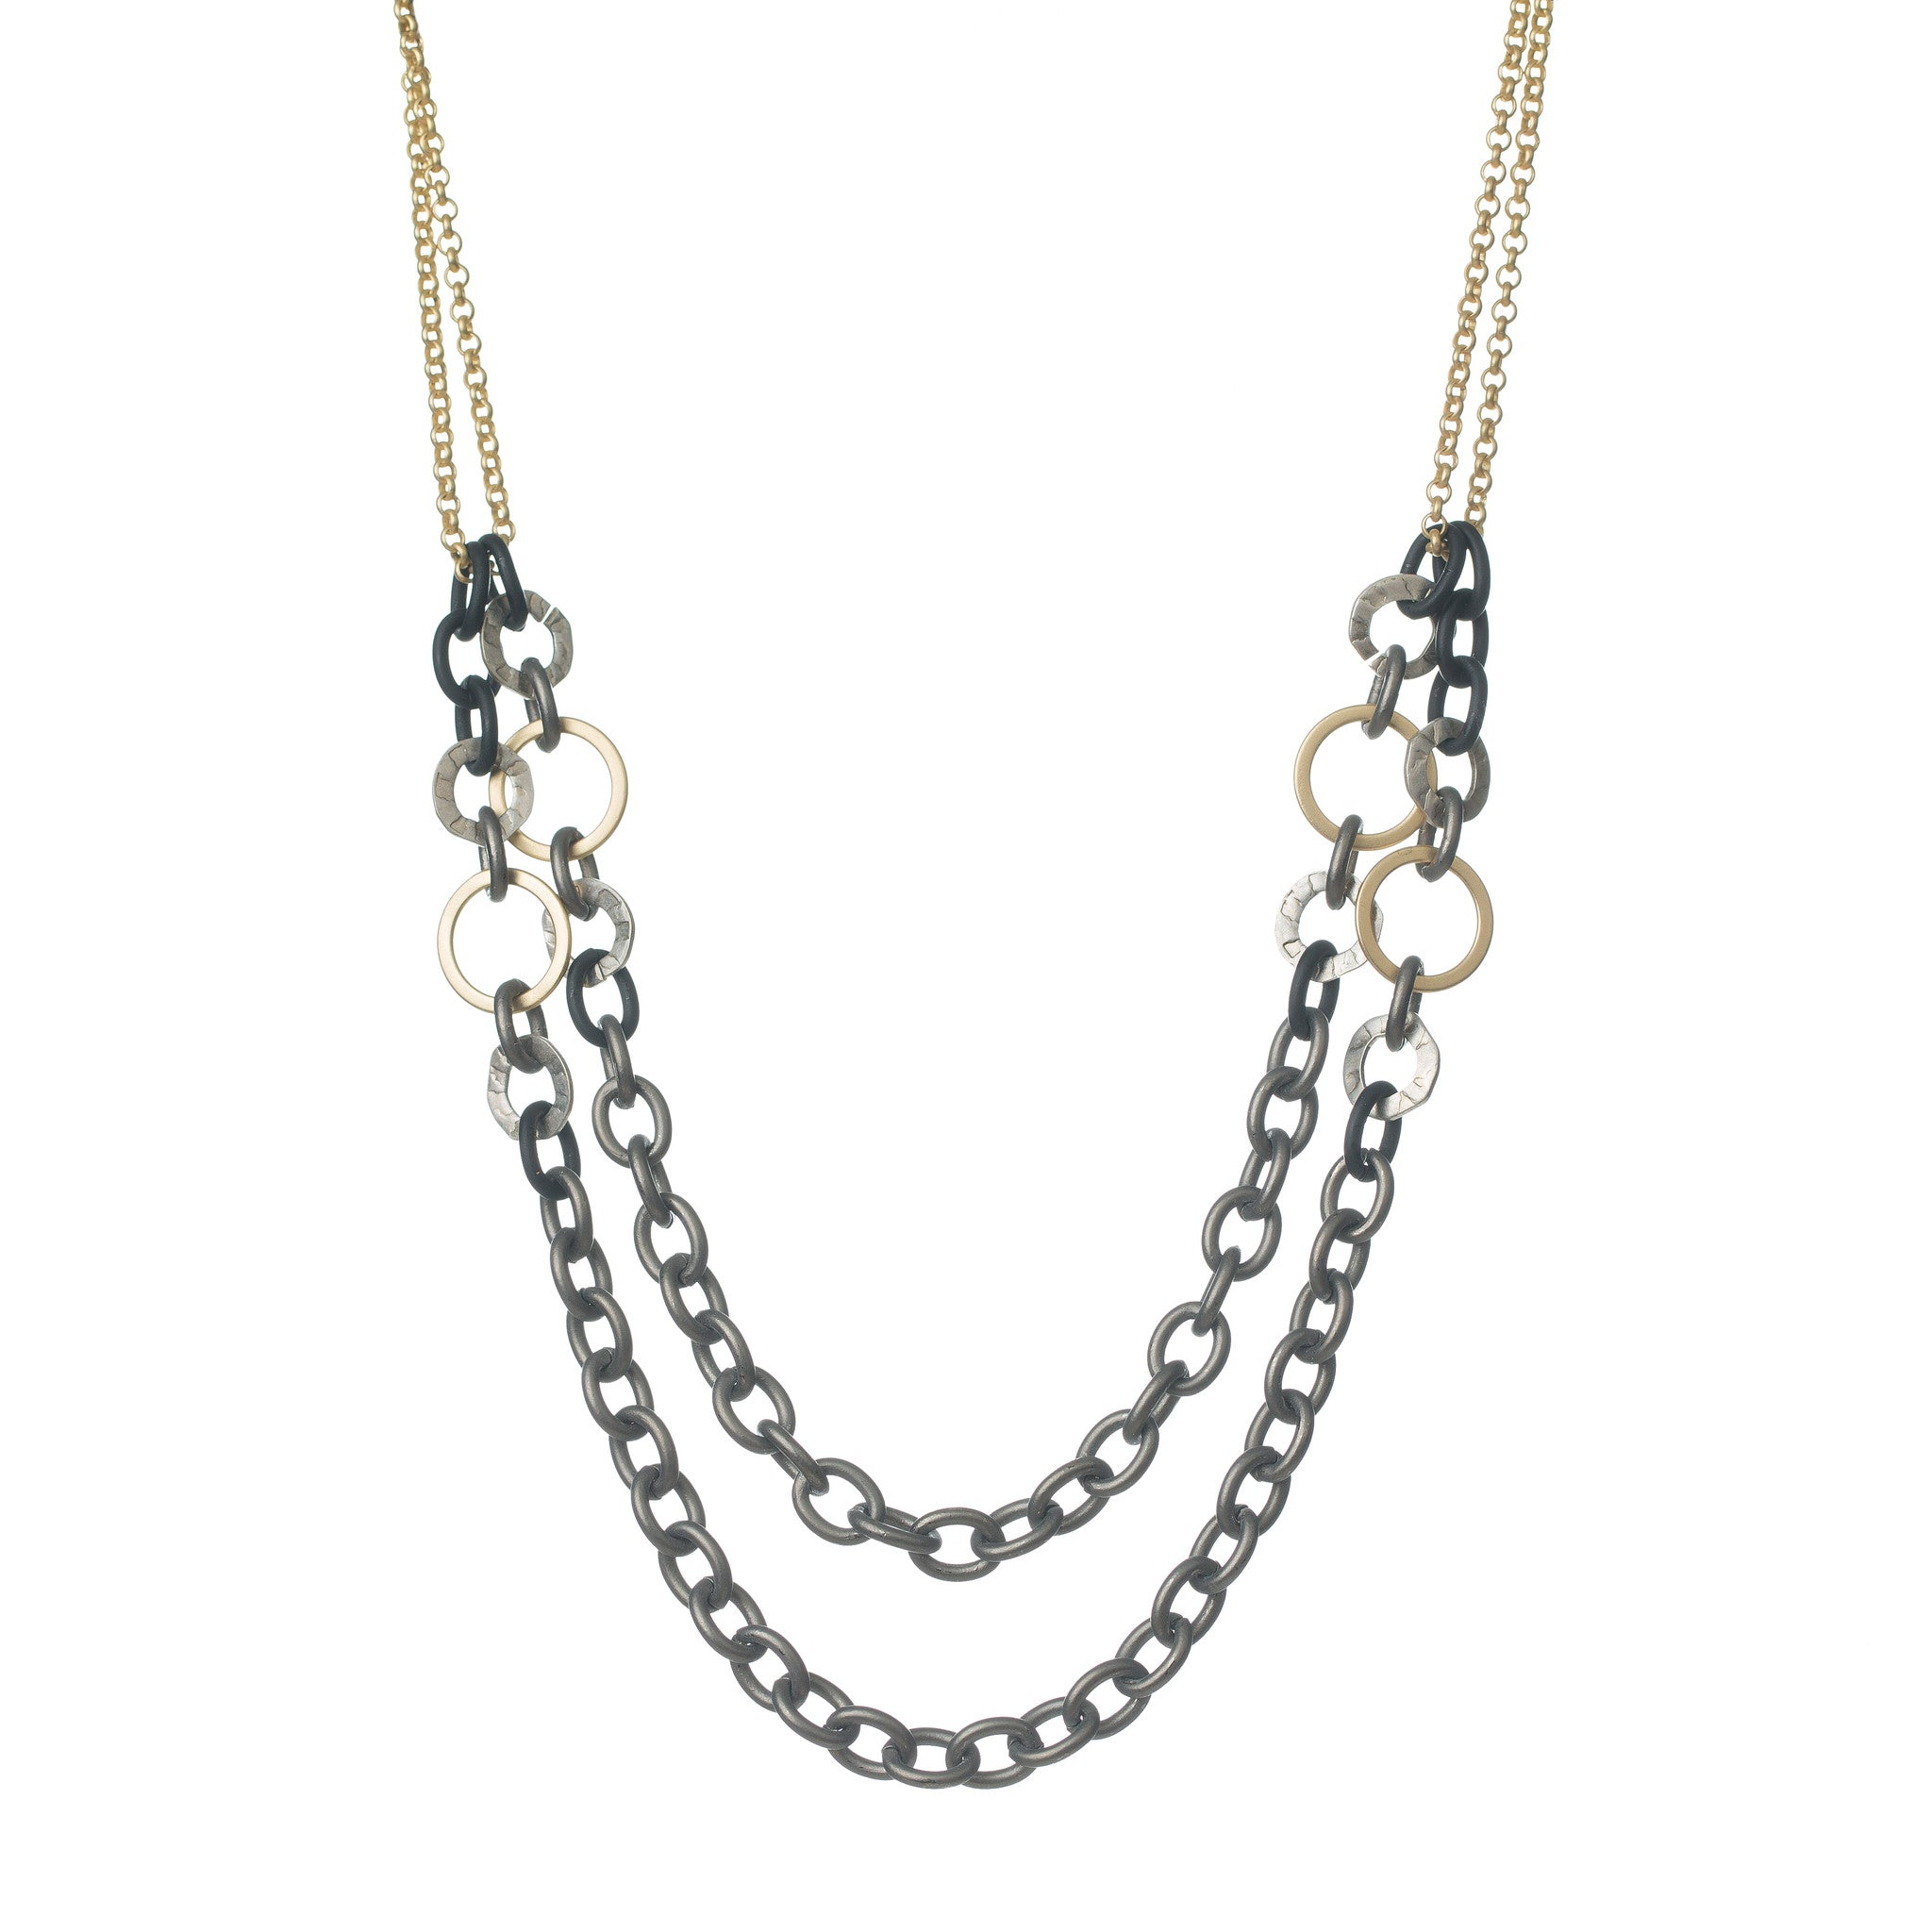 CHUNKY GUNMETAL MIXED METAL NECKLACE